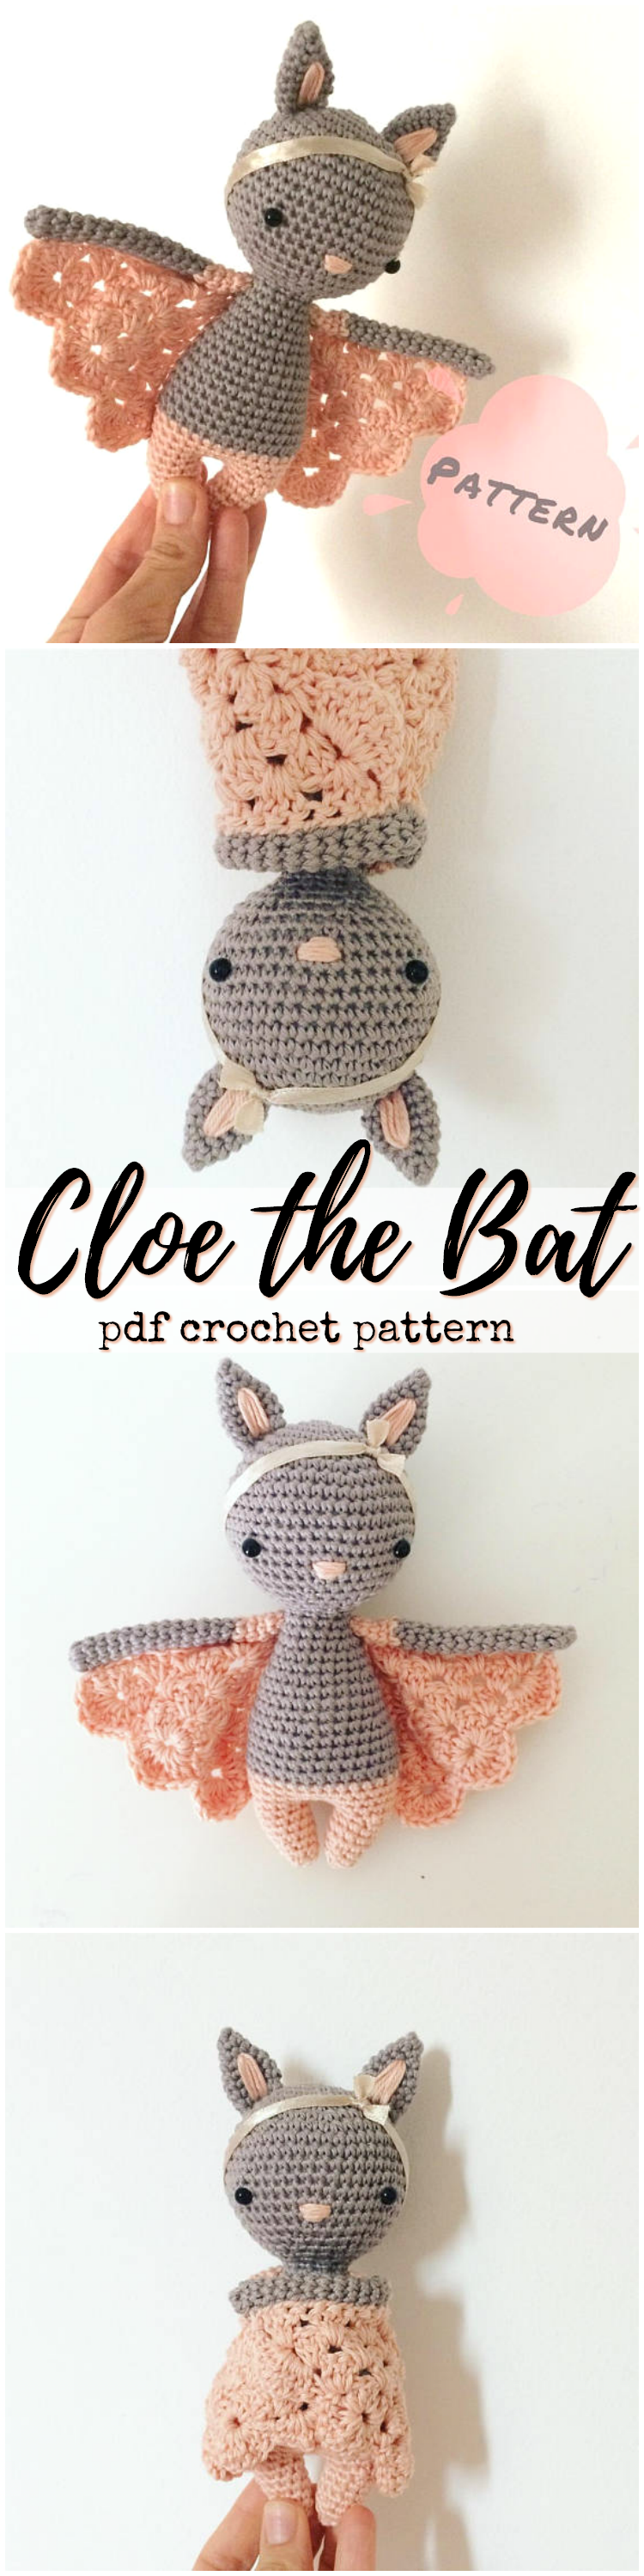 Cloe the bat doll crochet pattern! What a fun amigurumi toy crochet pattern to make! A sweet little bat doll! So unique. would make a great toy any child would love. Beautiful step by step instructions to make your own stuffed toy! #etsy #ad #halloween